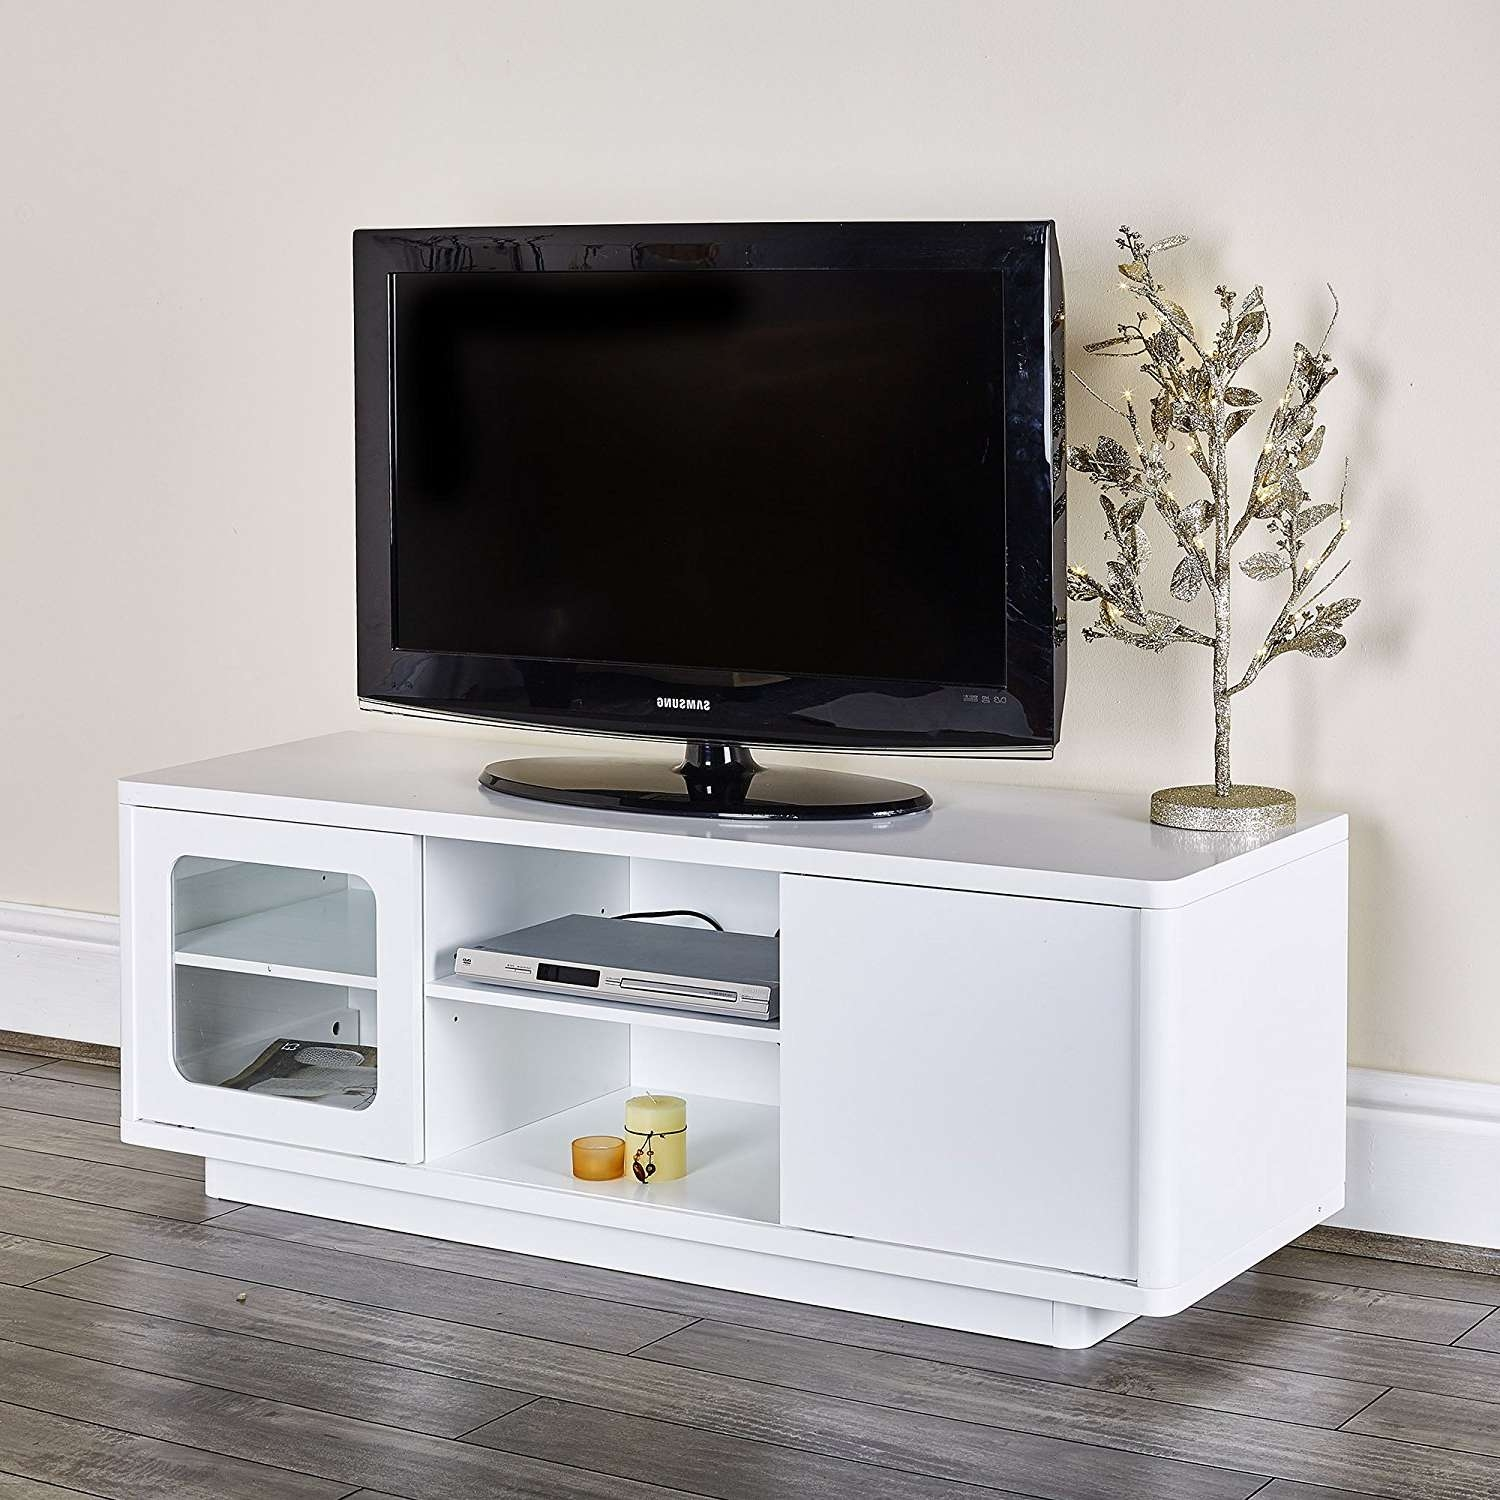 White Tv Cabinet Modern High Gloss Tv Table 2 Drawers Clear Glass Inside White Gloss Tv Stands With Drawers (View 14 of 15)